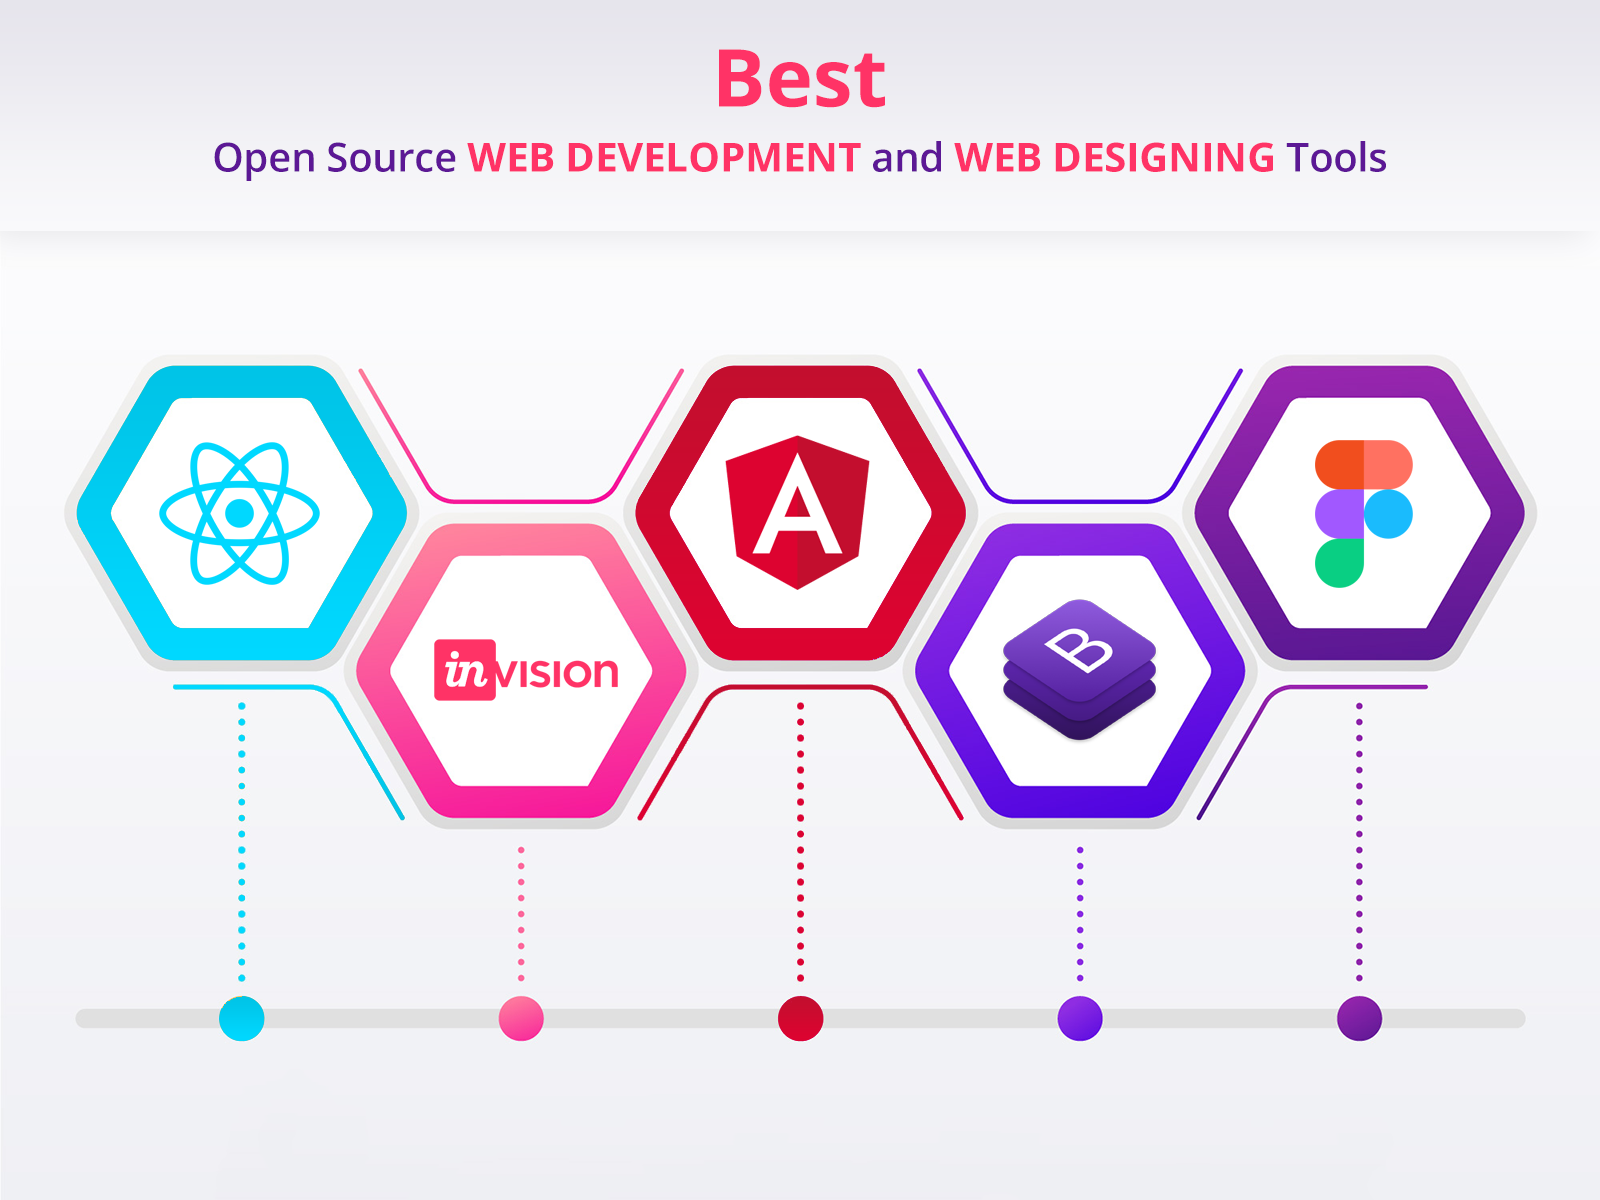 web development and web designing tools